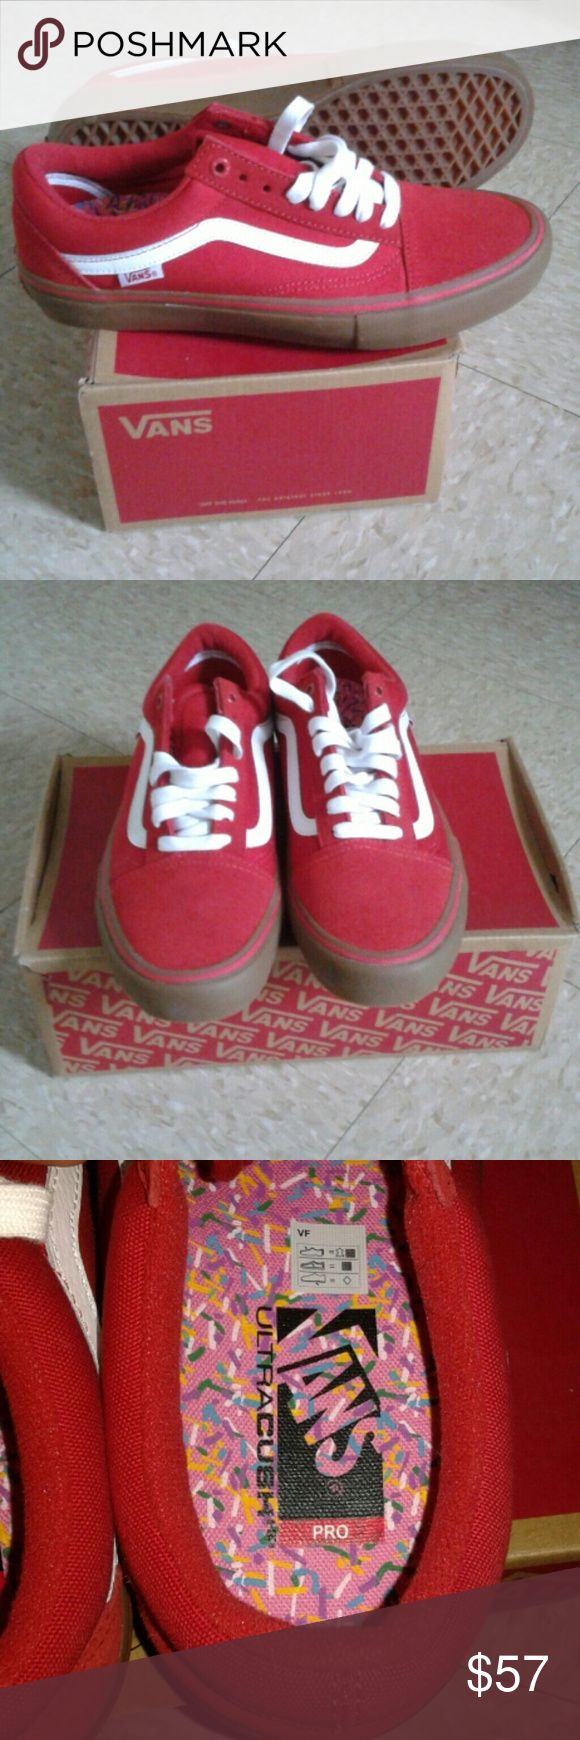 New Vans Red Old Skool Pro Gumsole Shoes Sz 8 Hi, for sale are a new pair of red old skool pro shoes by Vans in a size 8 in mens. Please feel free to ask me anything thank you and enjoy. Vans Shoes